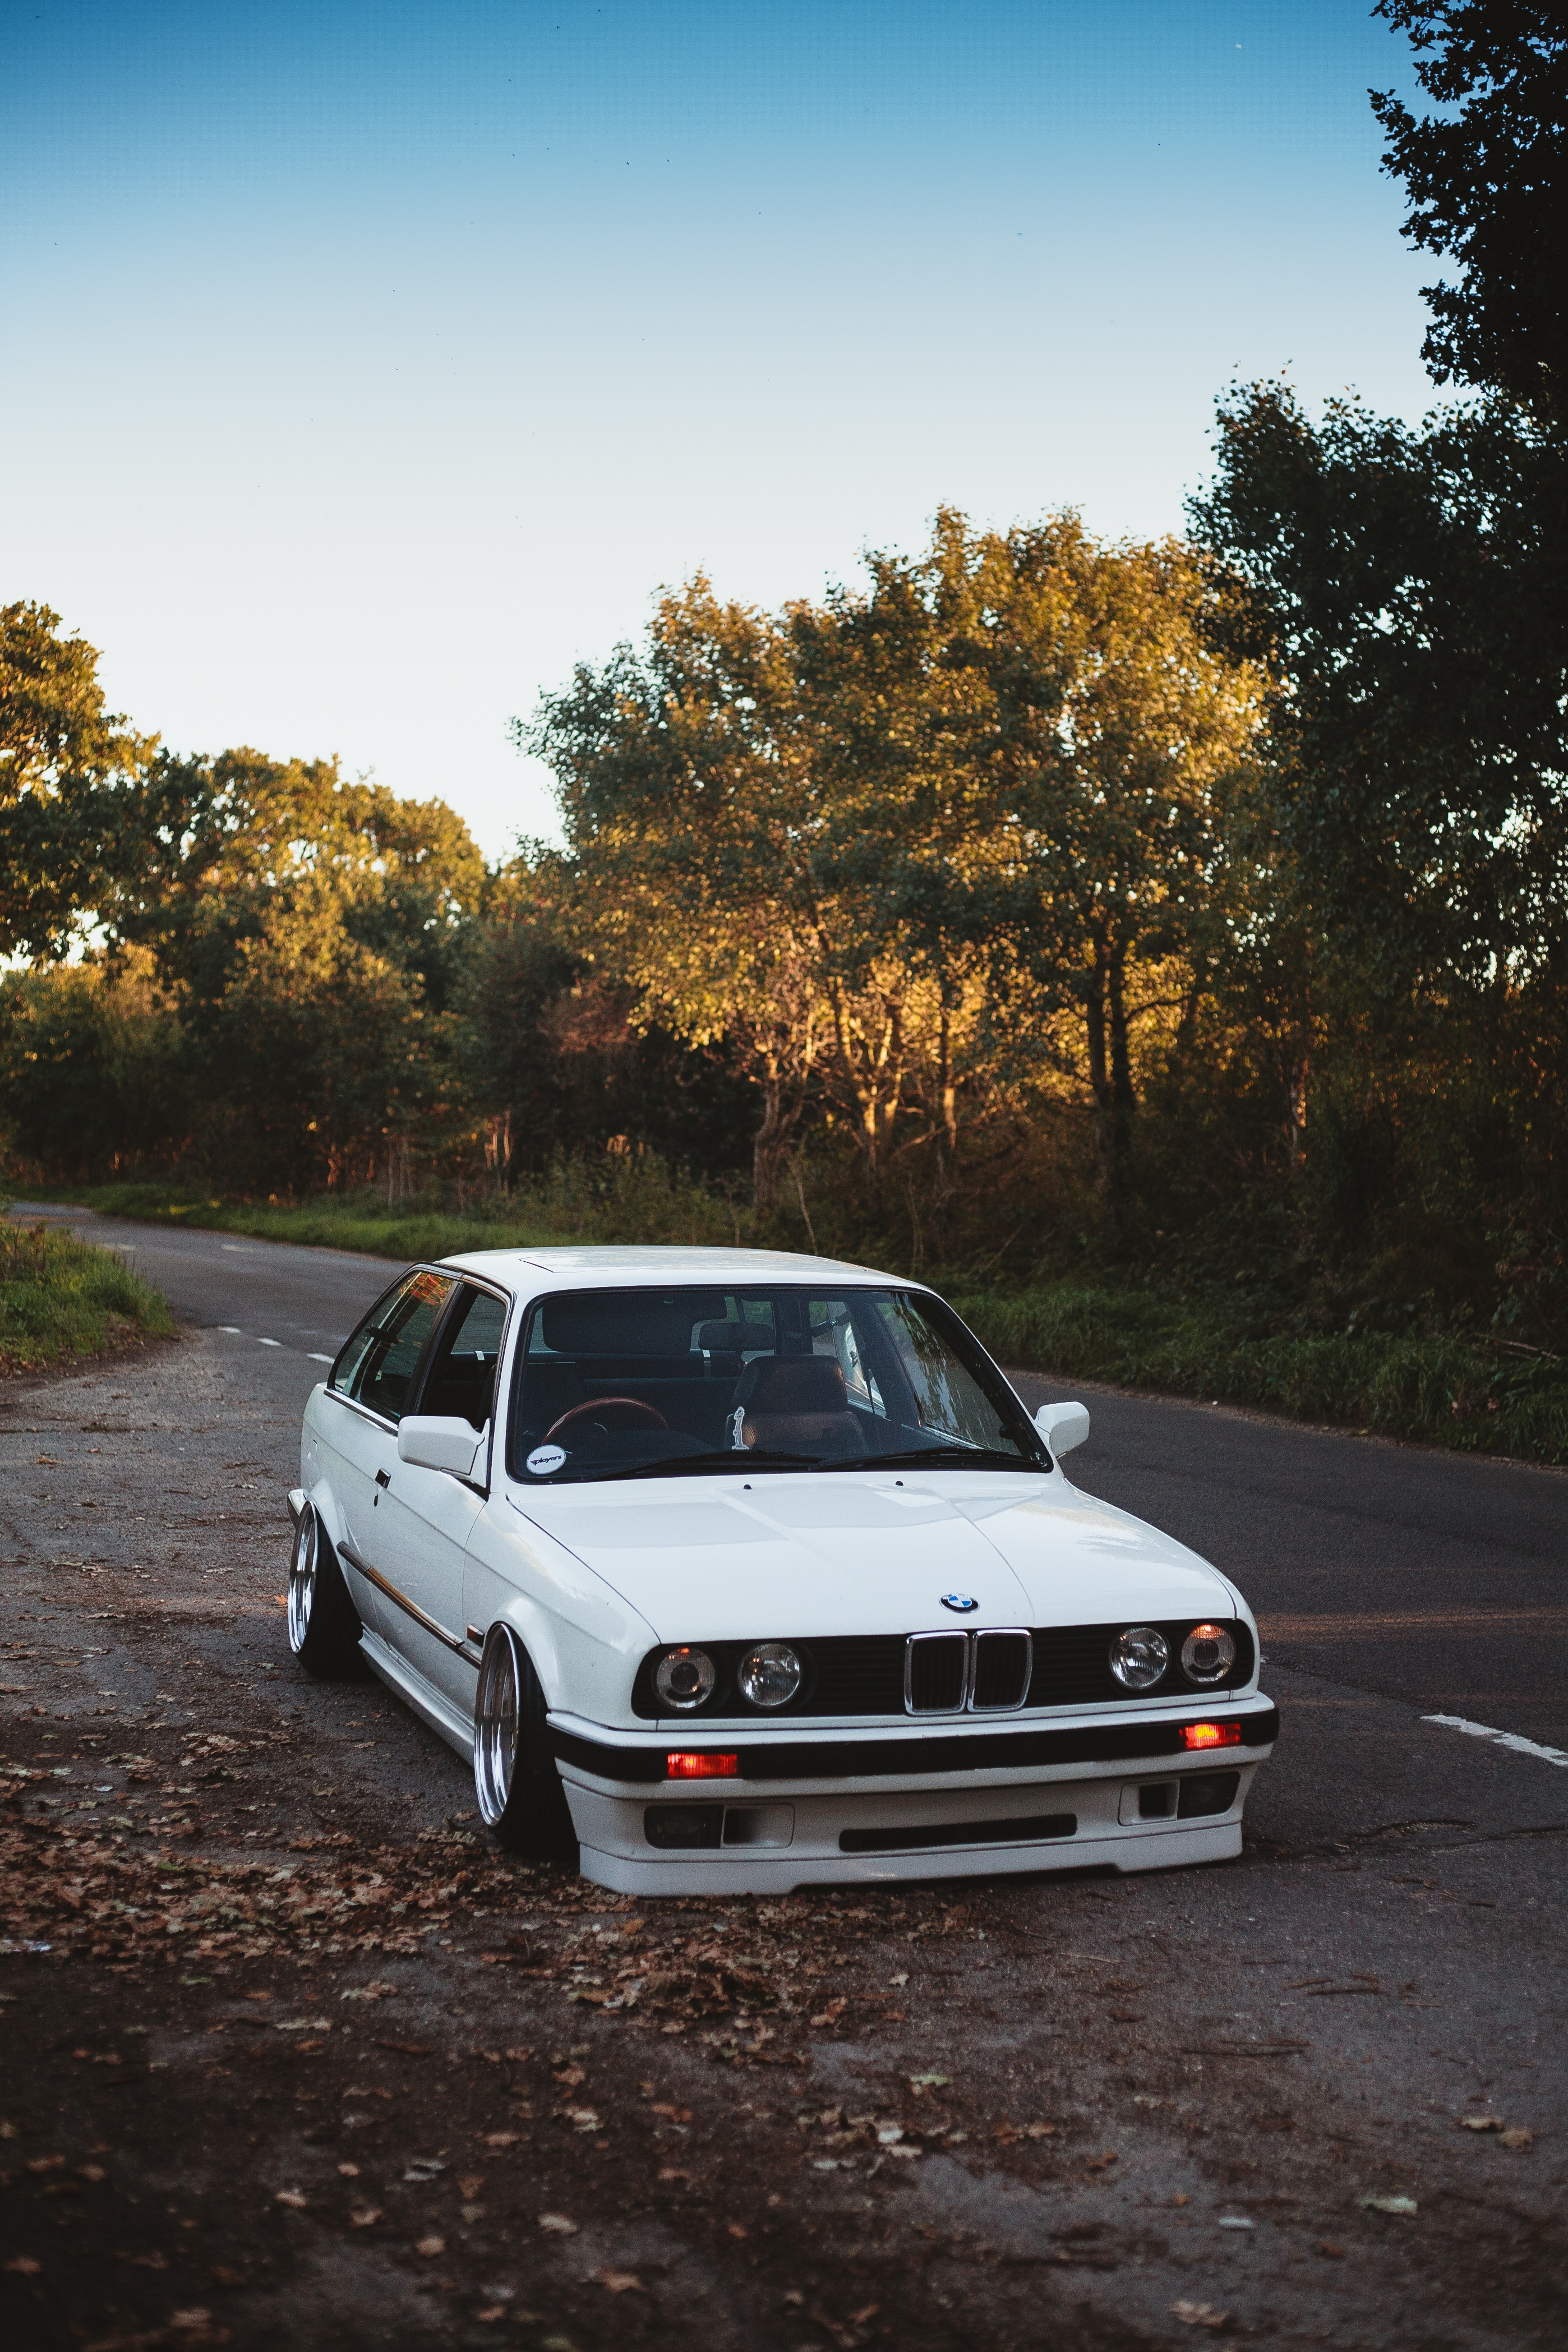 136637 download wallpaper Bmw, Trees, Autumn, Cars, Car screensavers and pictures for free